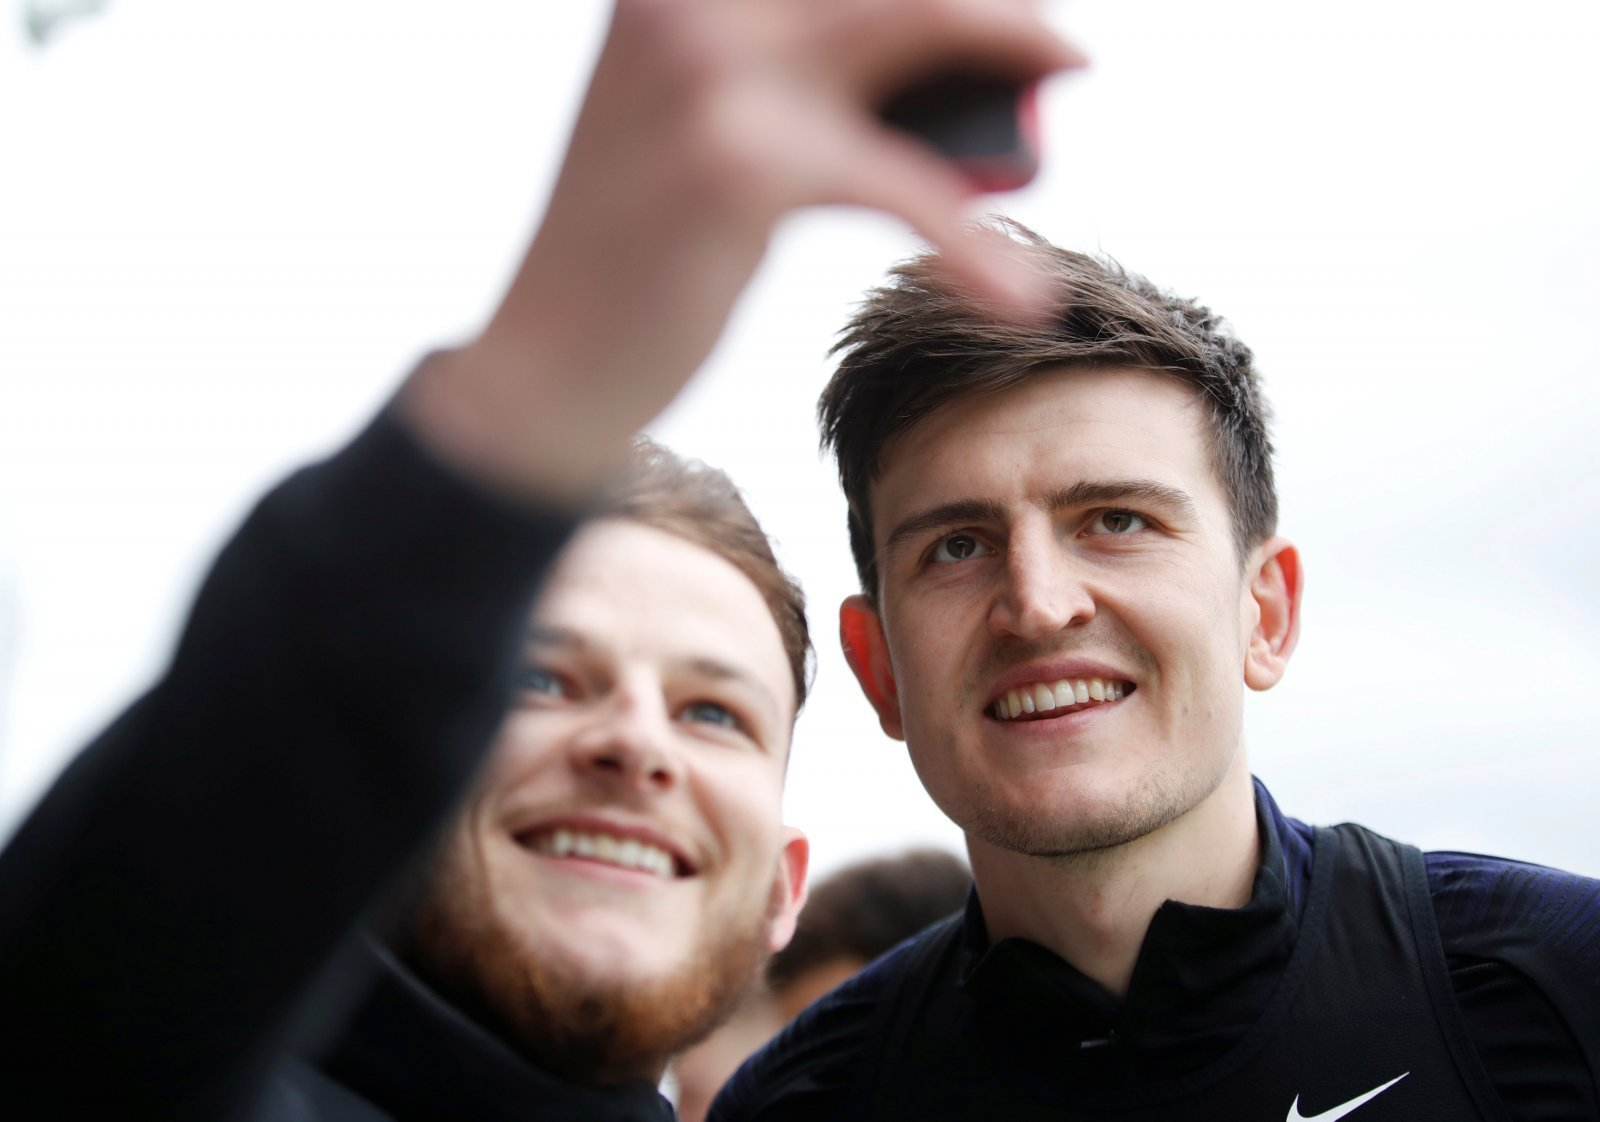 Manchester City: The knock-on effects of potentially signing Harry Maguire